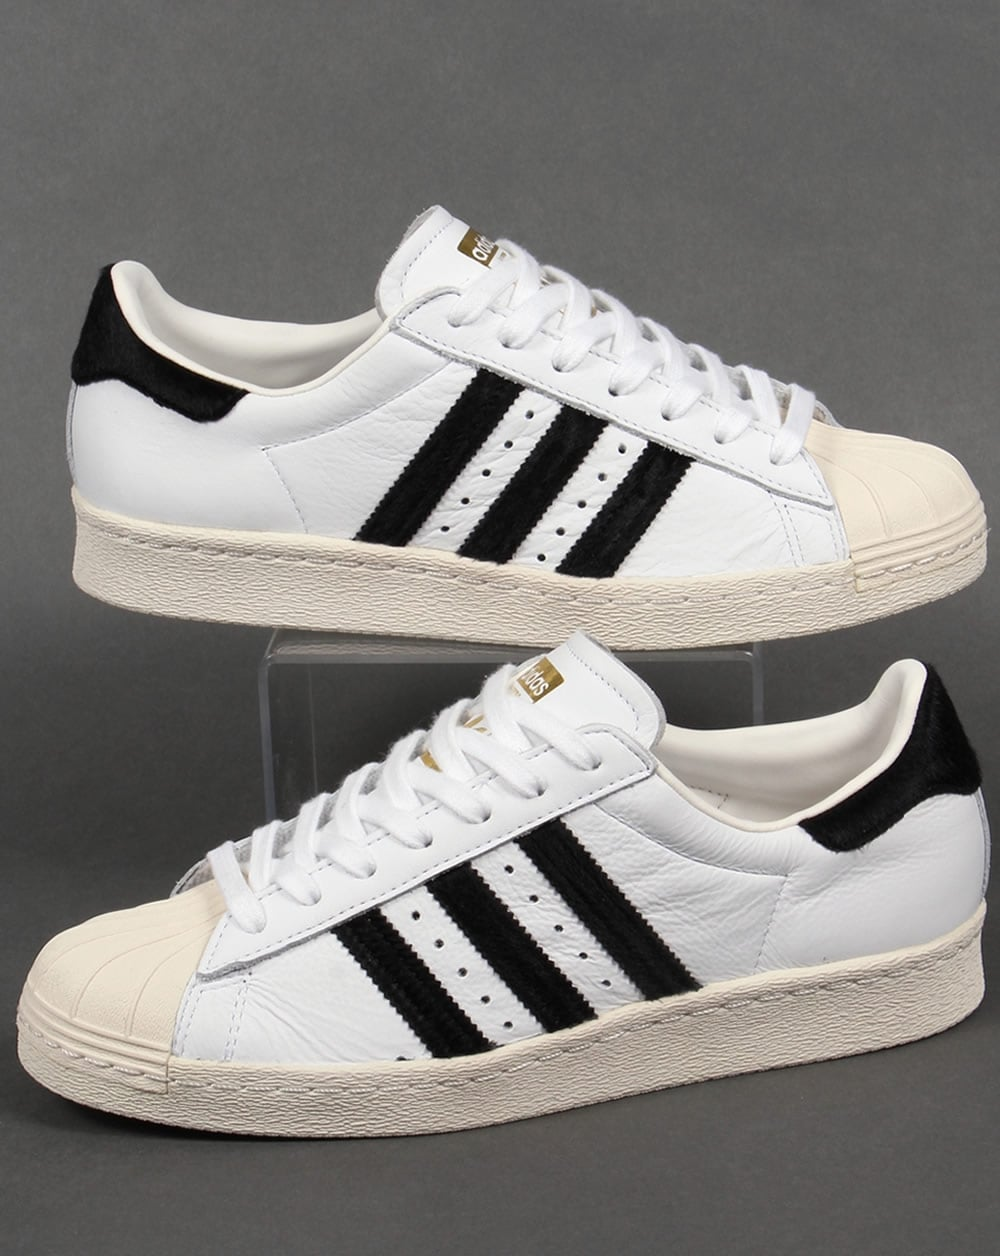 low priced ef117 8e39b adidas Trainers Adidas Superstar 80s Trainers White Black Gold